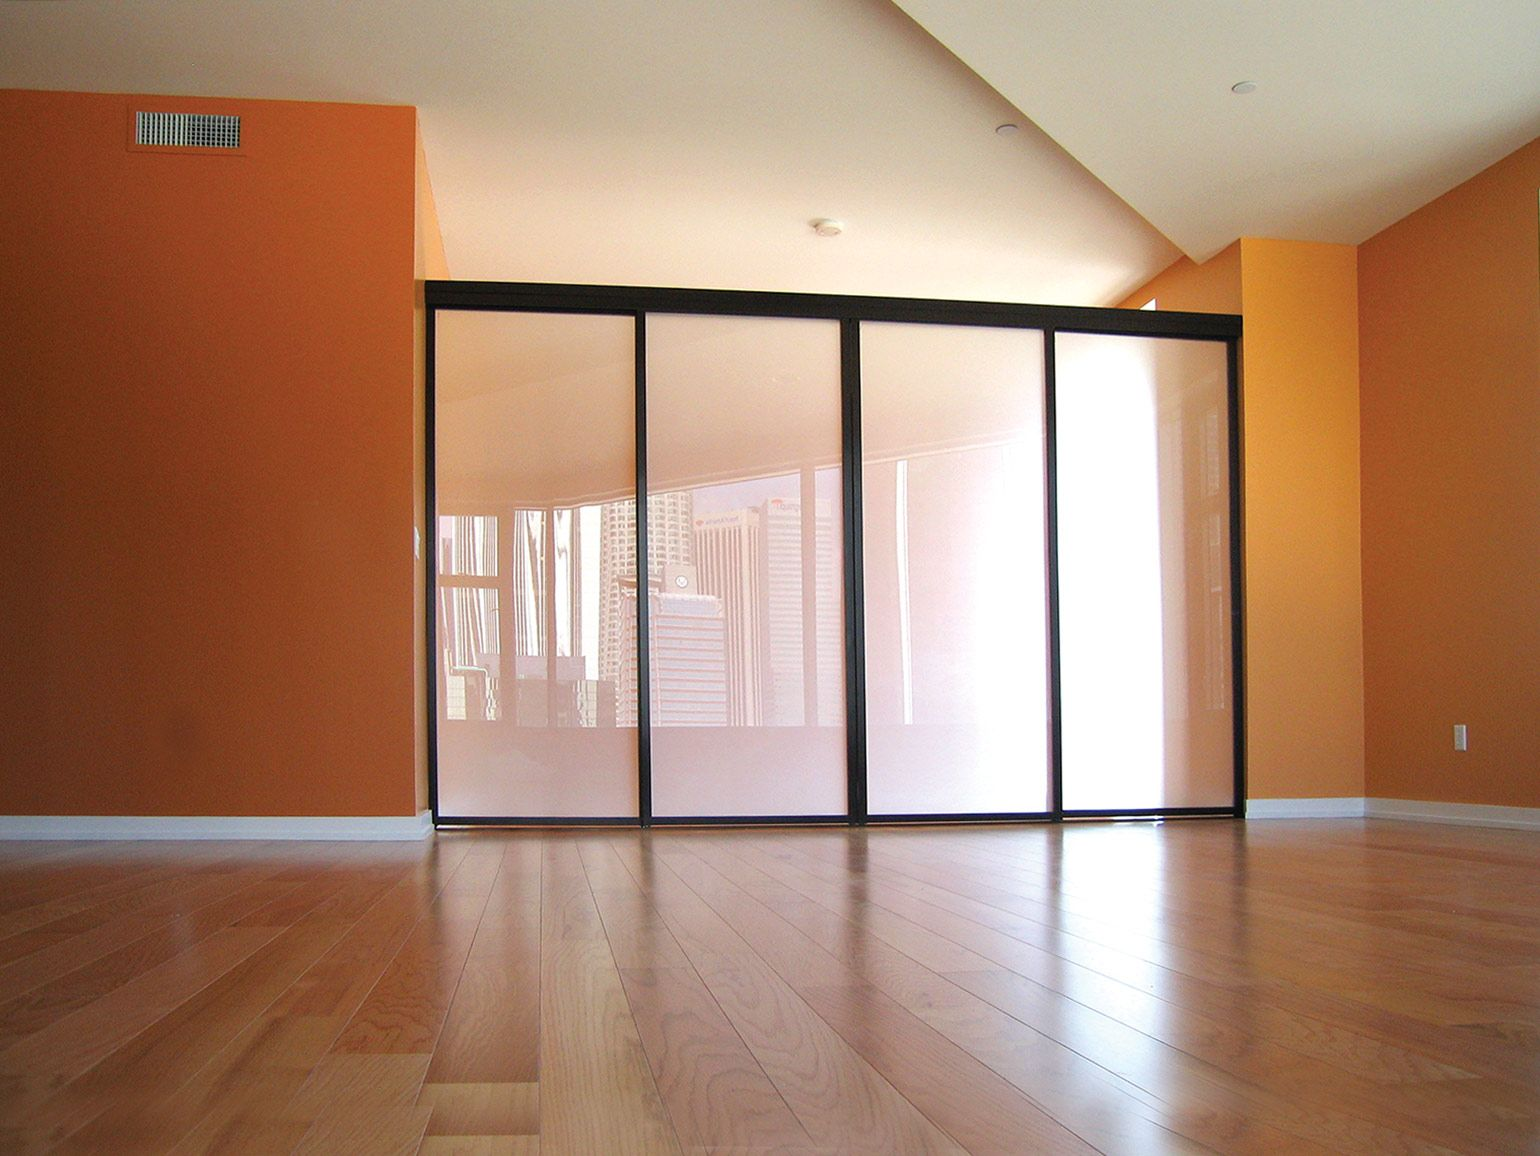 Sliding Glass Room Dividers For Lofts Inspirational